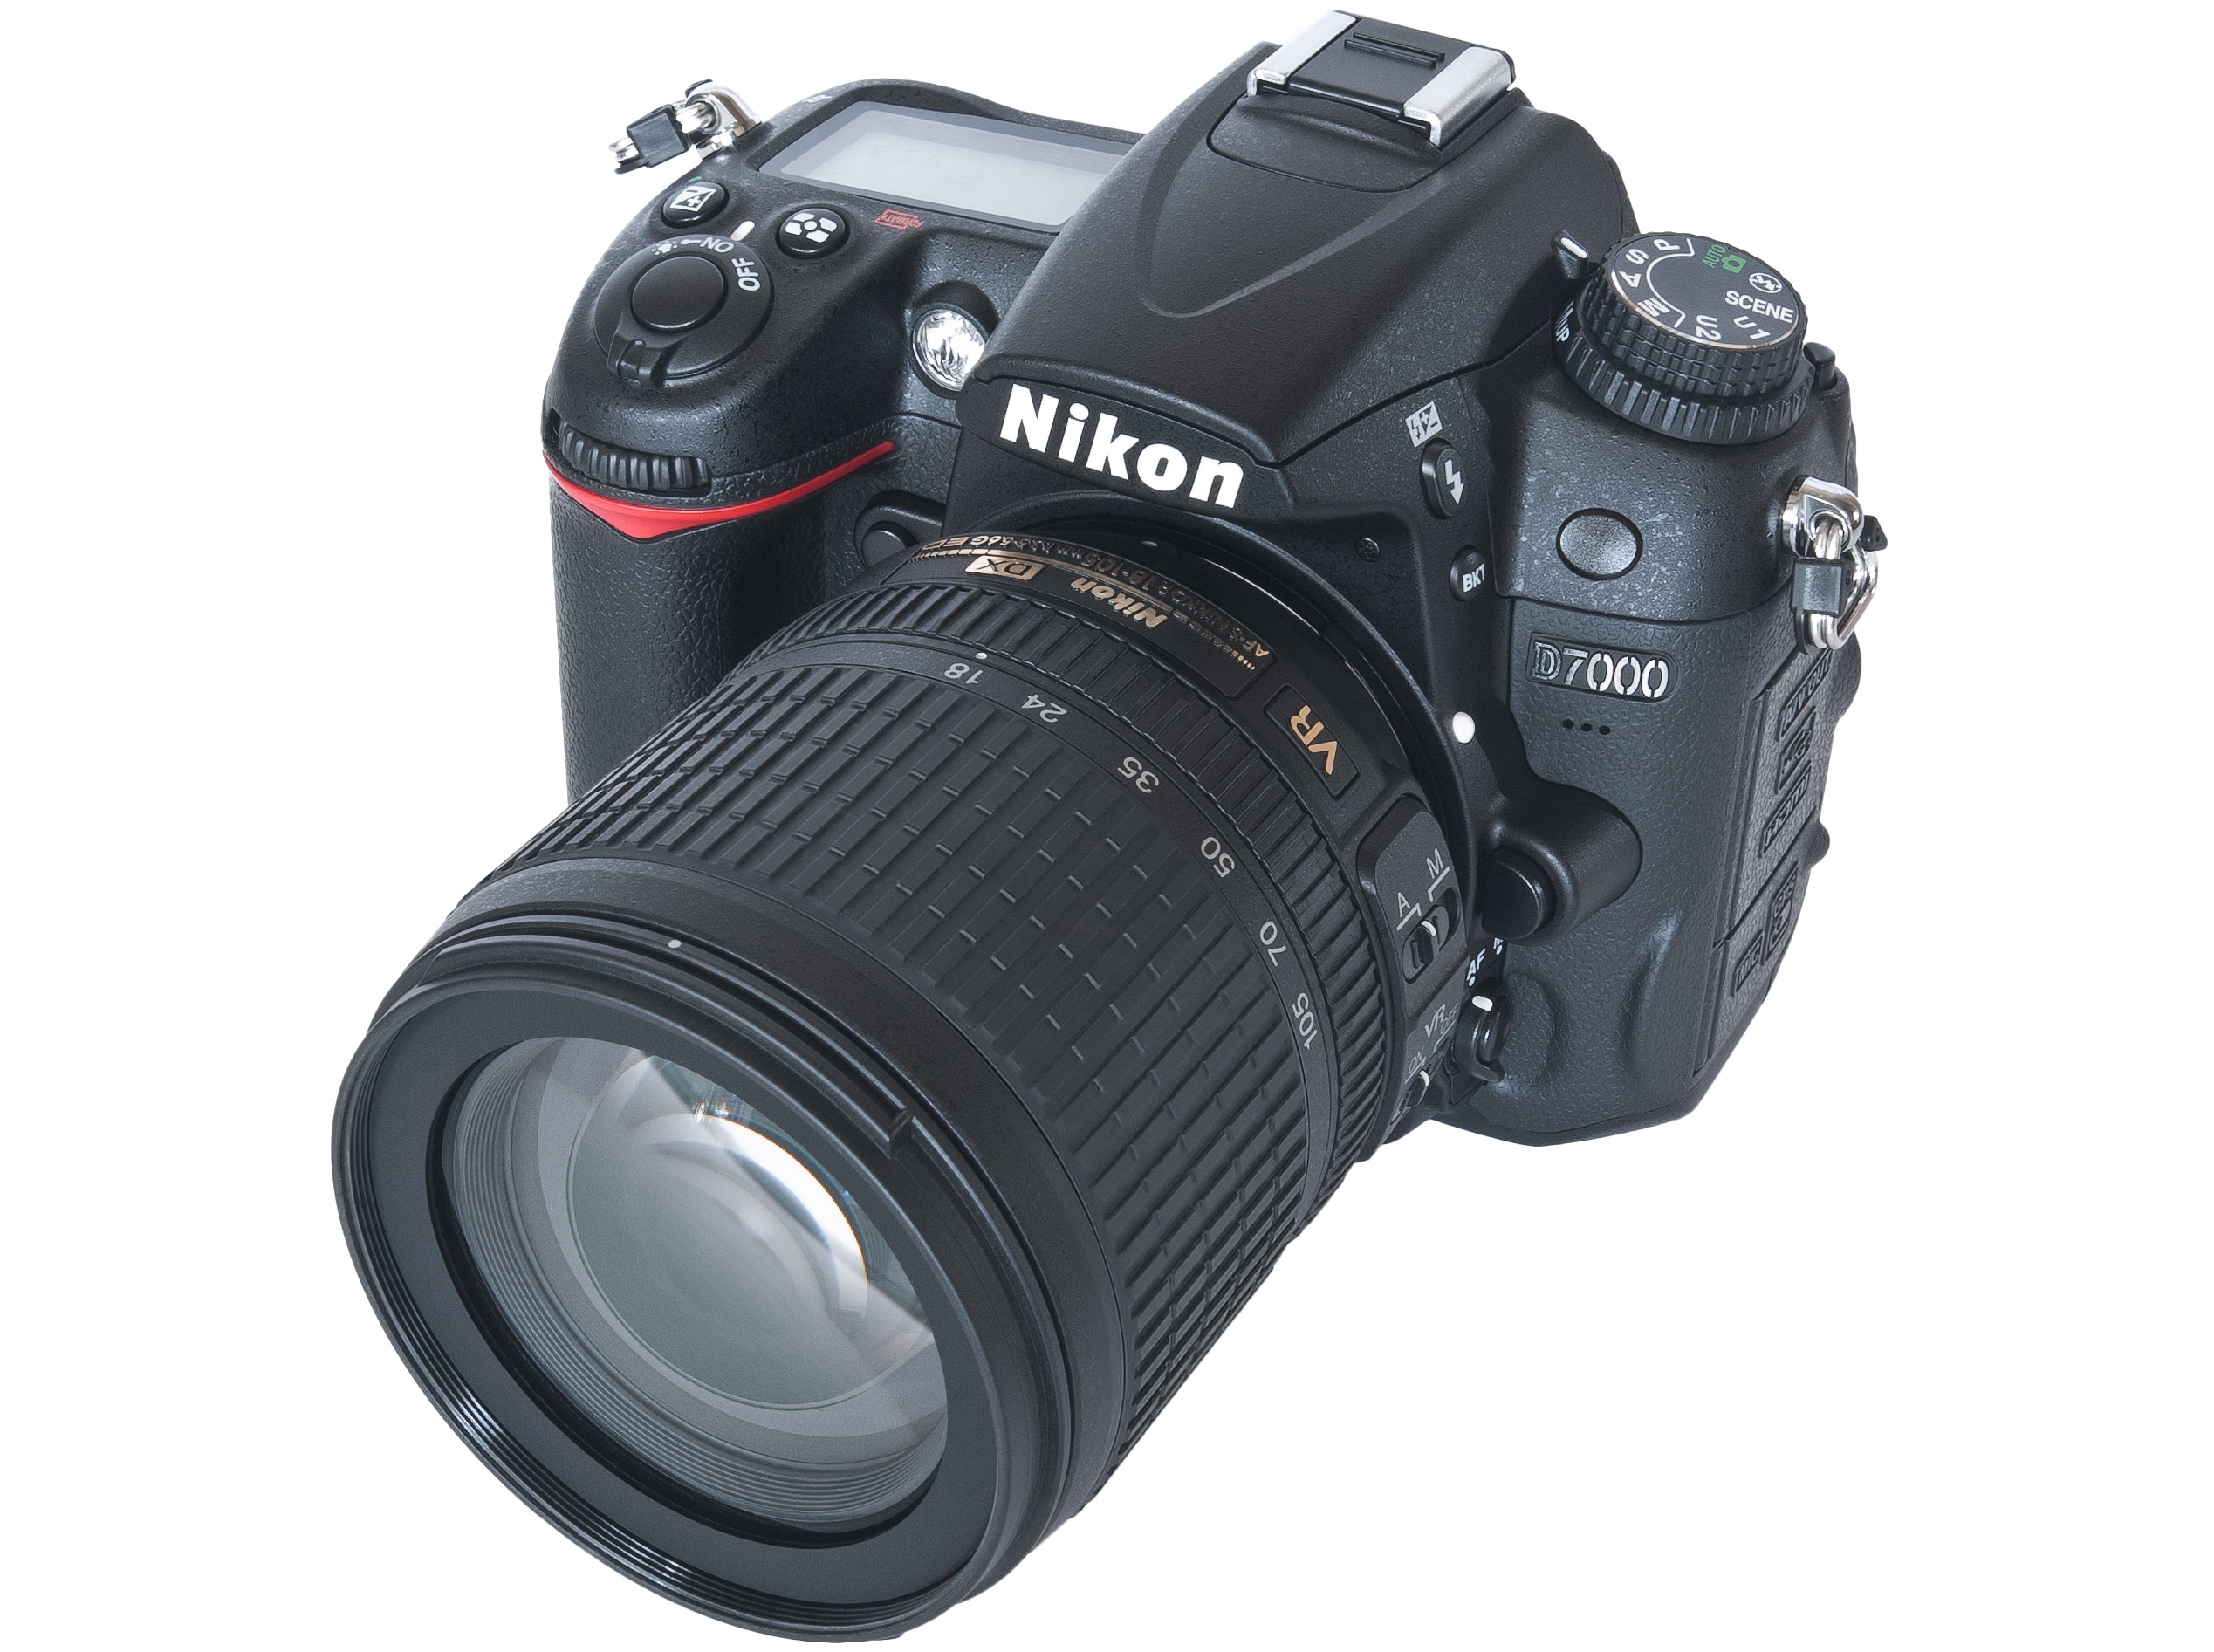 Nikon D7000 with 18-105mm f 3.5-5.6 ED VR